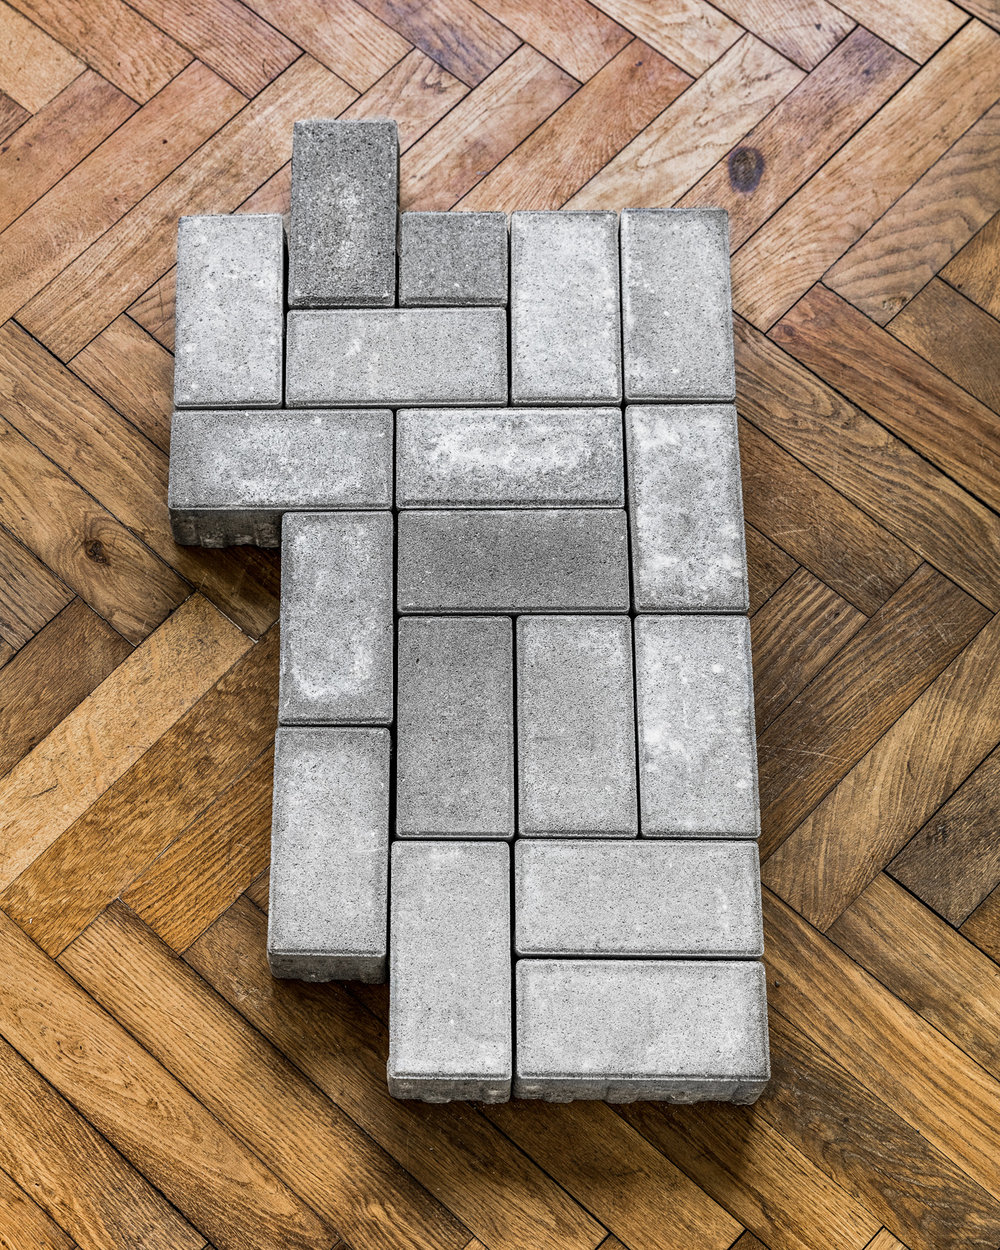 Thomas Geiger, A stage for unscrupulous behaviour, 2017, concrete paving stones, adhesive letters, 90,5 x 49,5 x 8 cm